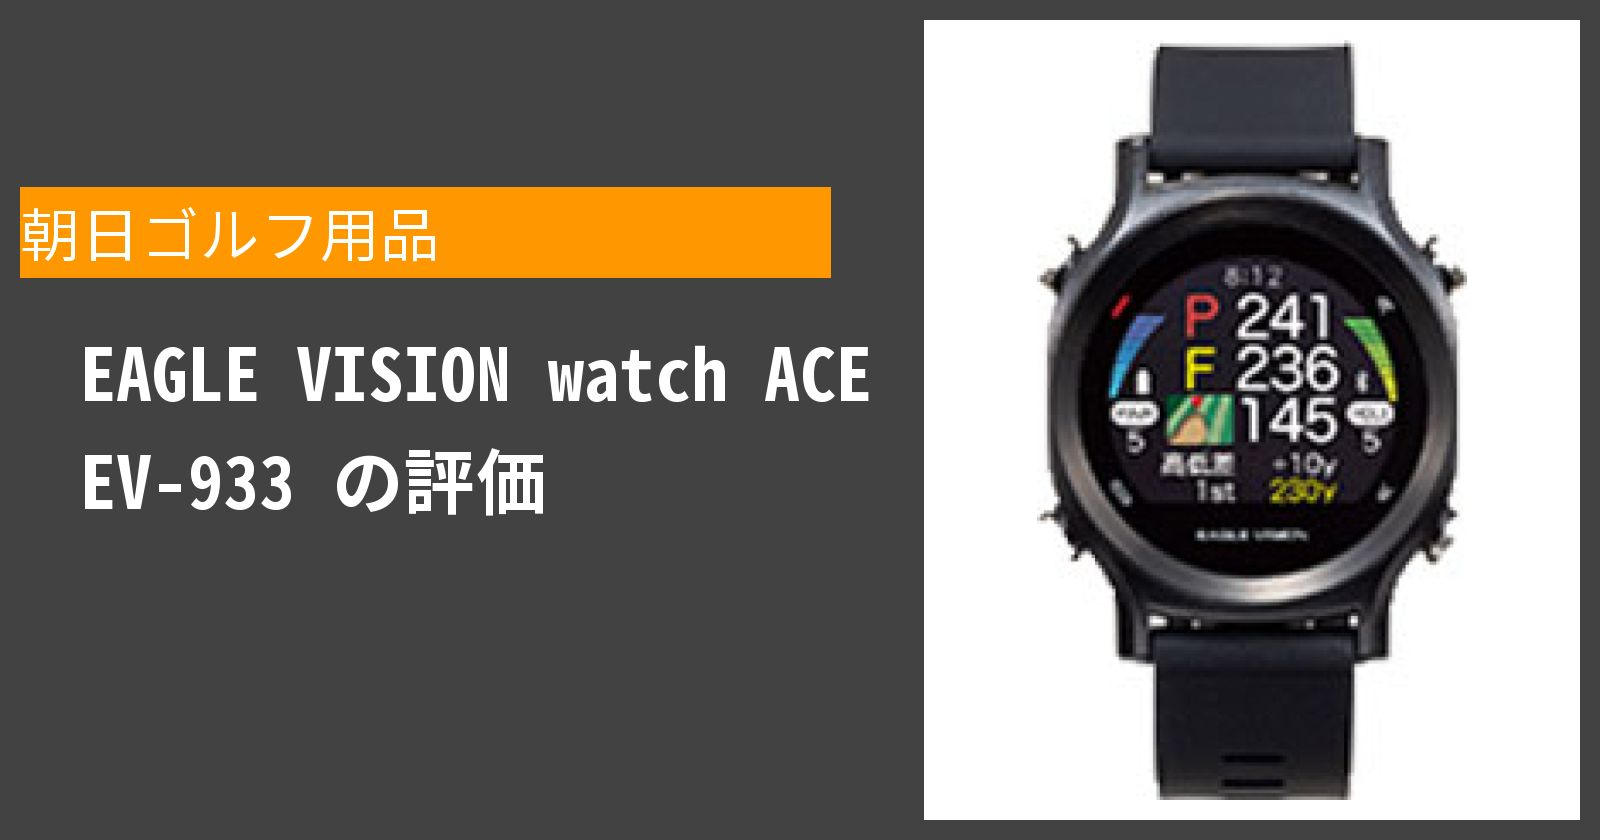 EAGLE VISION watch ACE EV-933を徹底評価